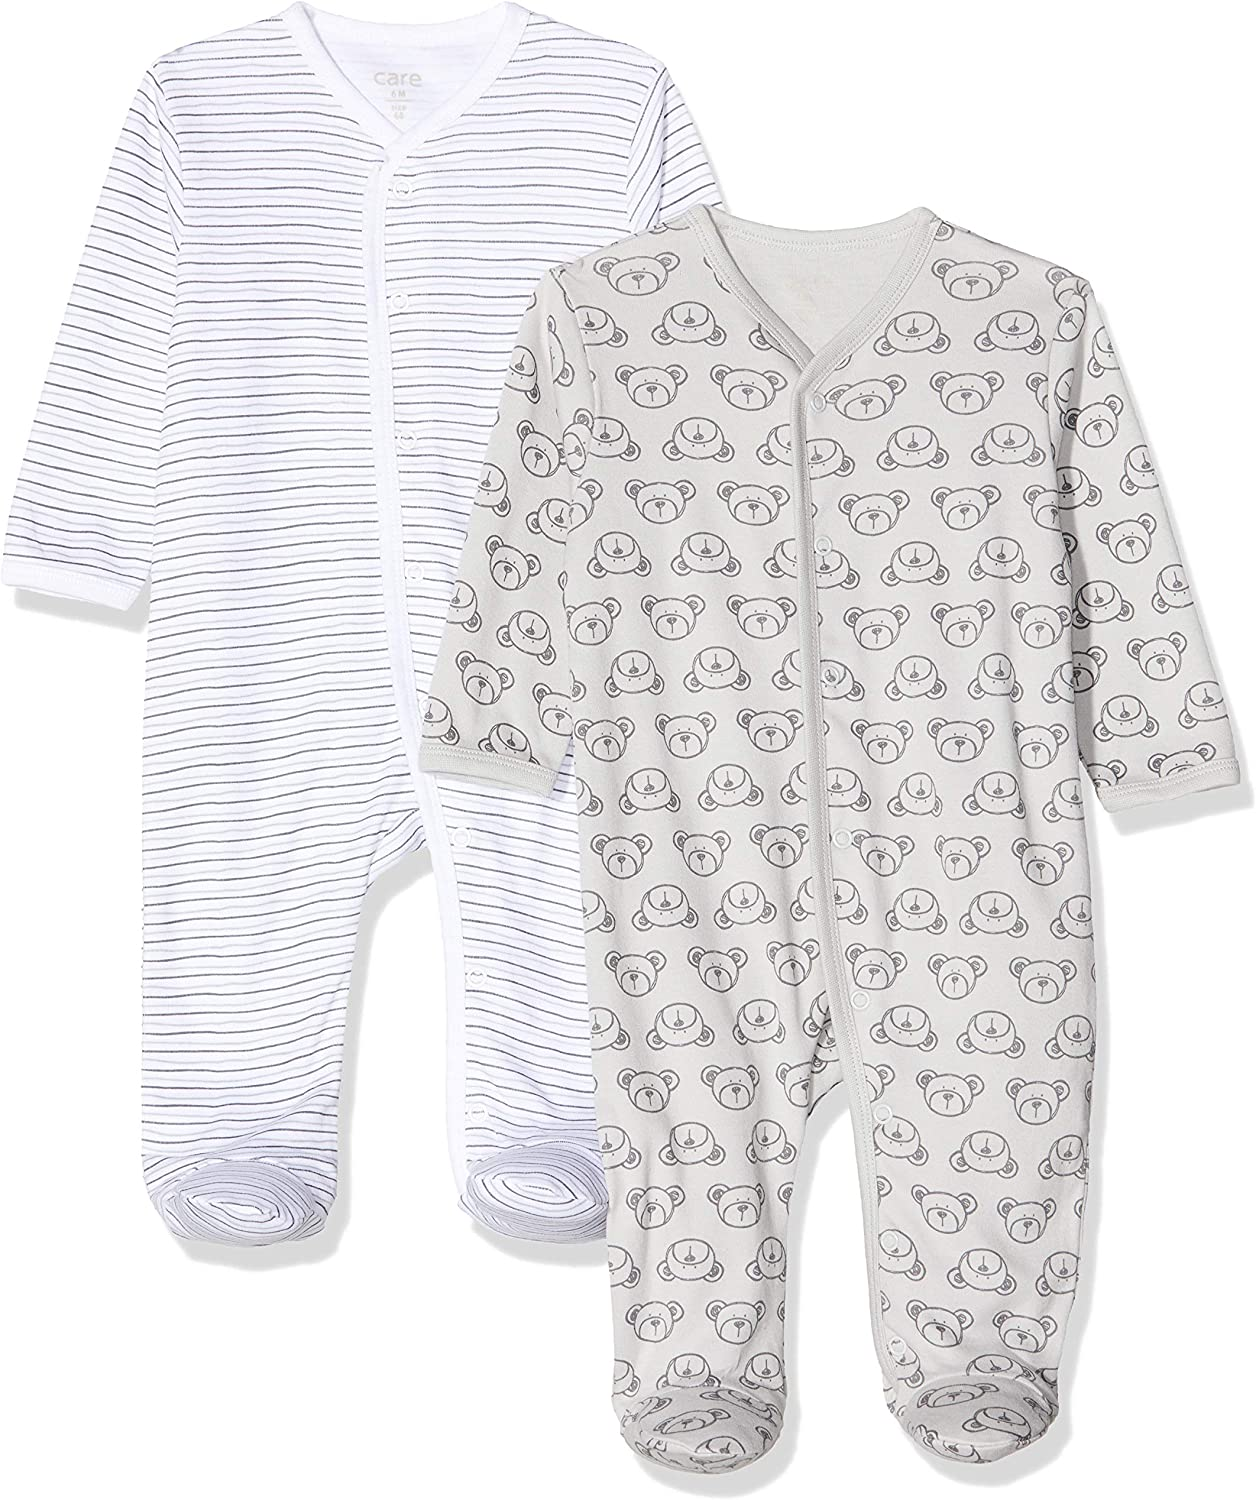 Care Unisex Baby 4136 Long Sleeve Romper